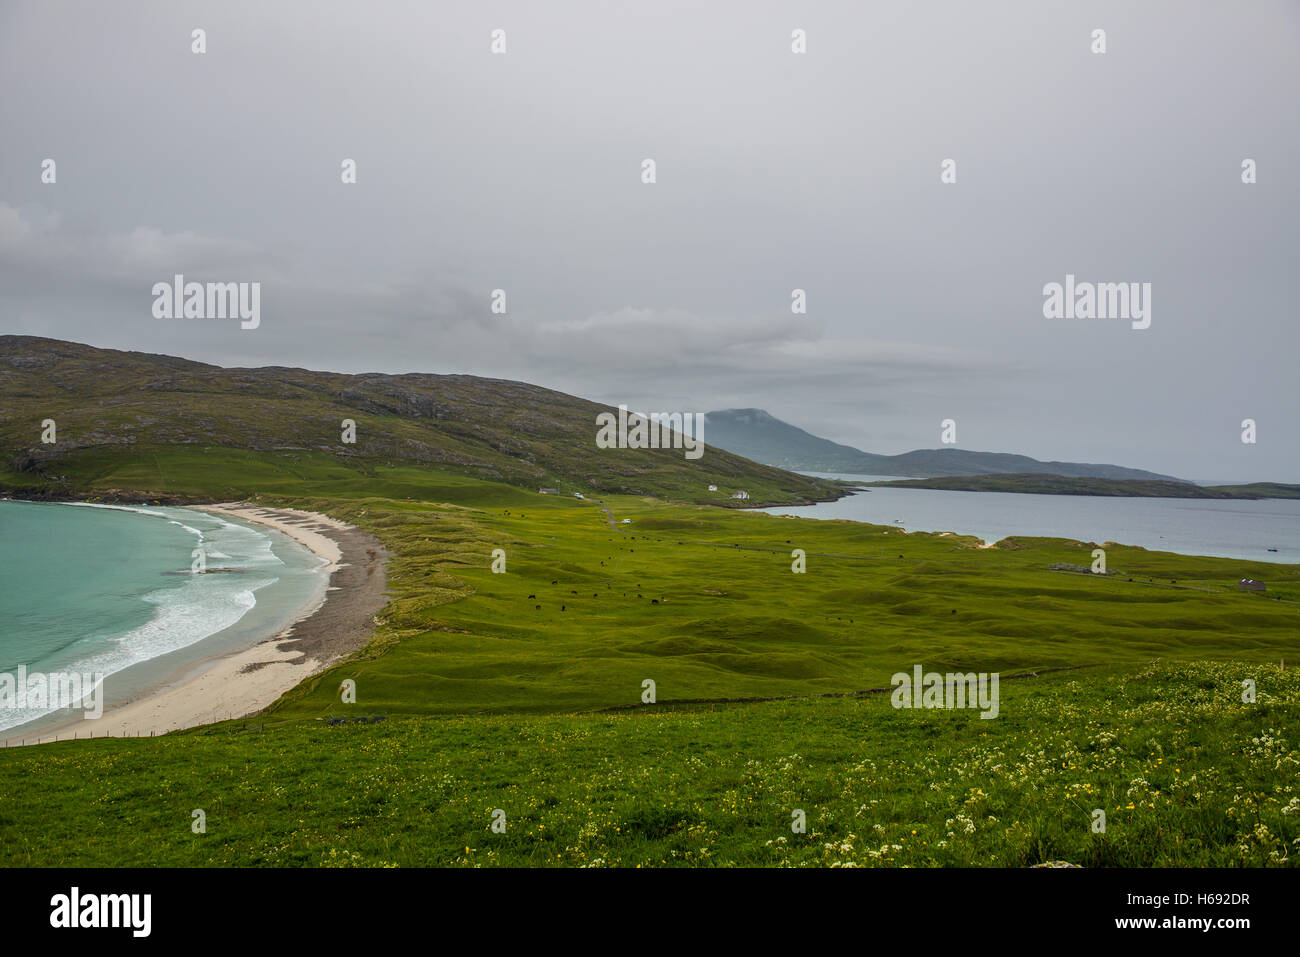 A beach on the island of Vatersay in the Outer Hebradies, Scotland. - Stock Image